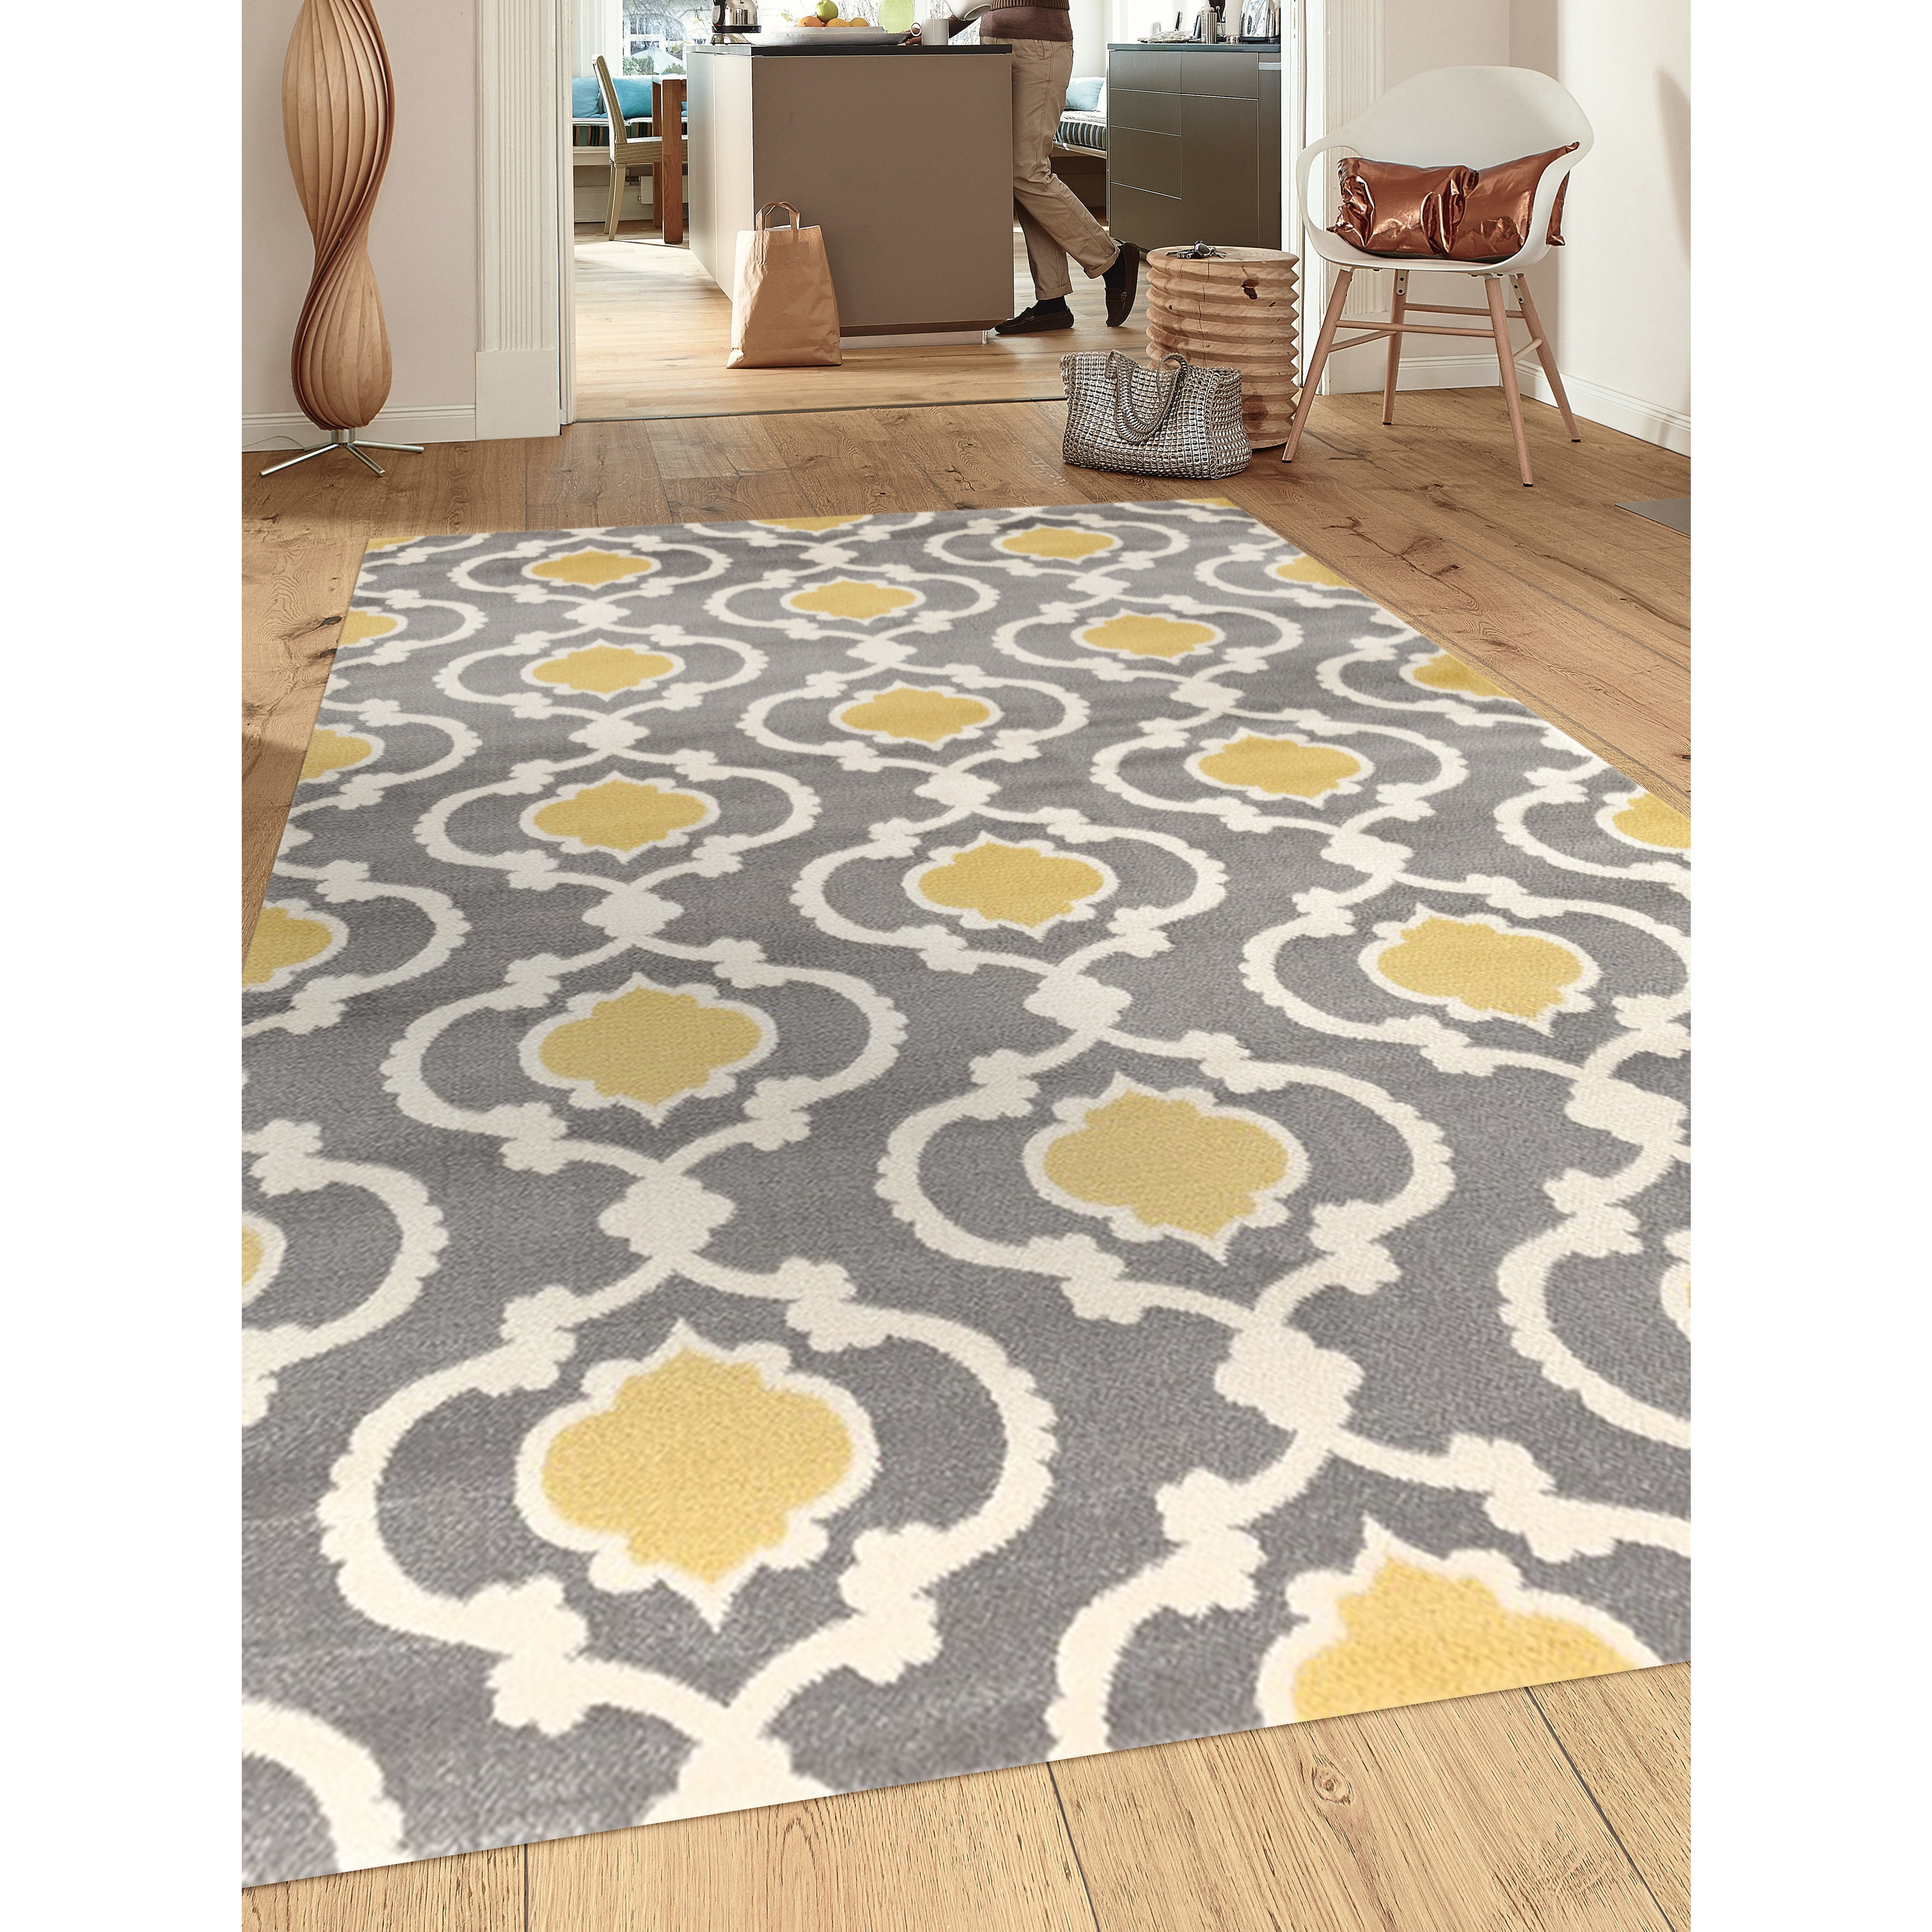 nida rugs tufted rug hand grey area pin yellow blue products and